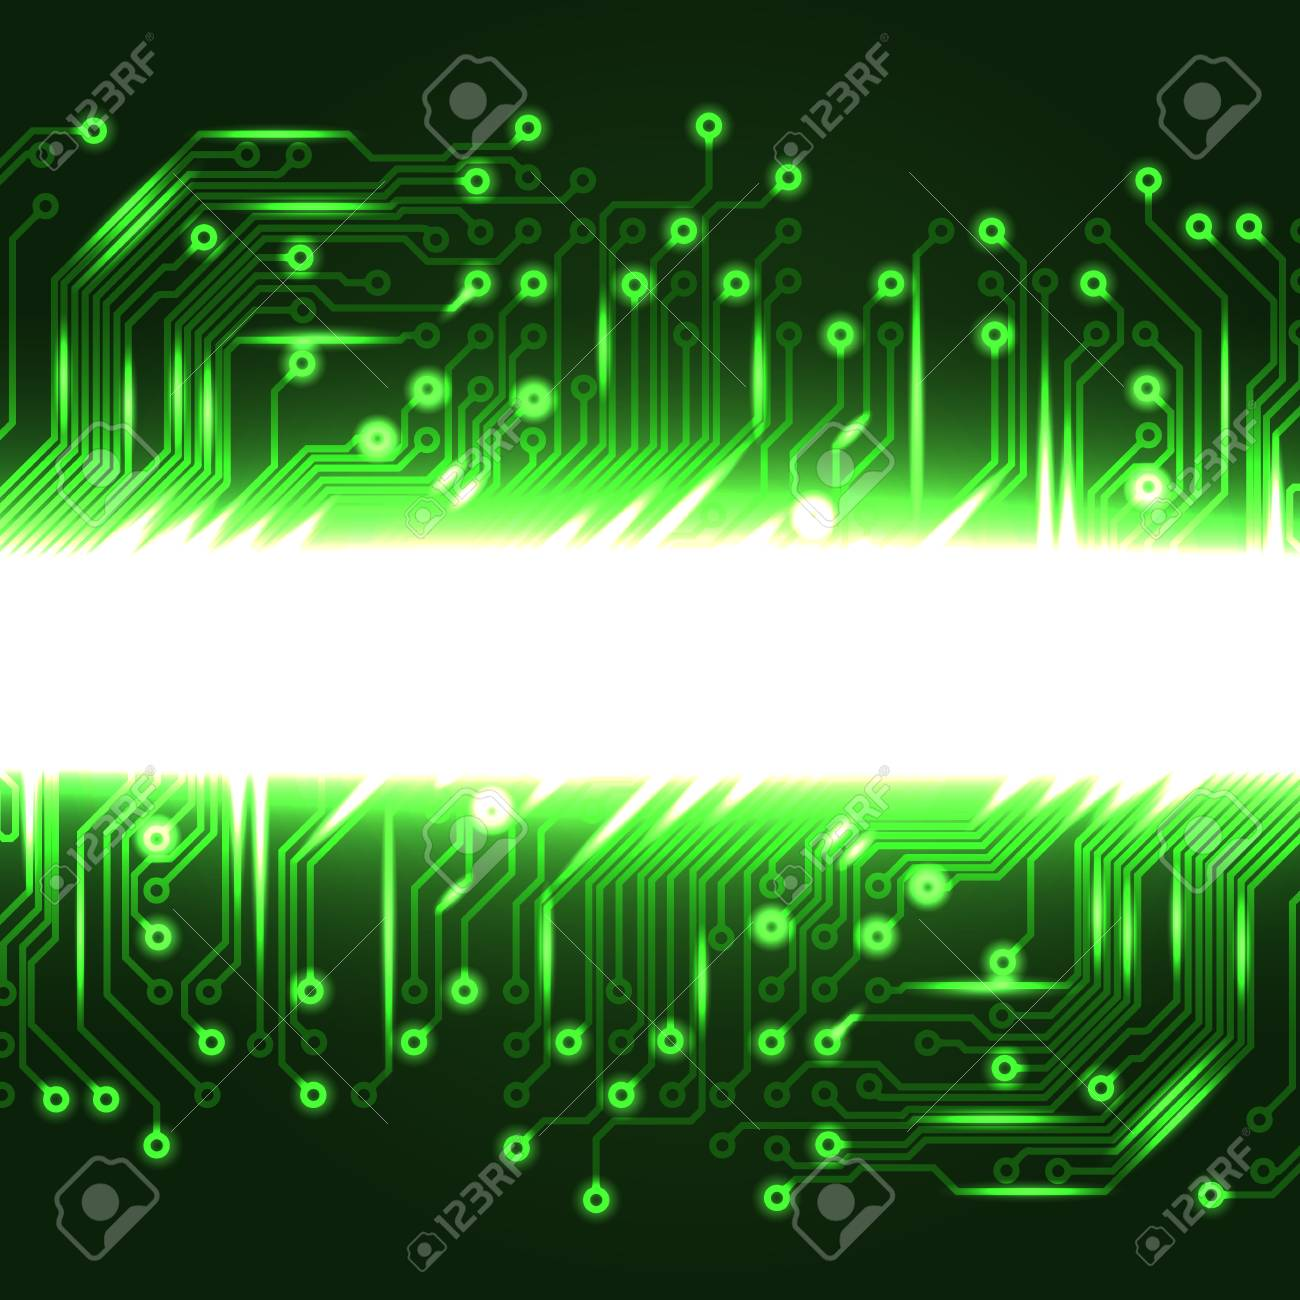 Abstract Electronics Green Background With Circuit Board Texture Vector Design Eps10 Pattern For Your Business